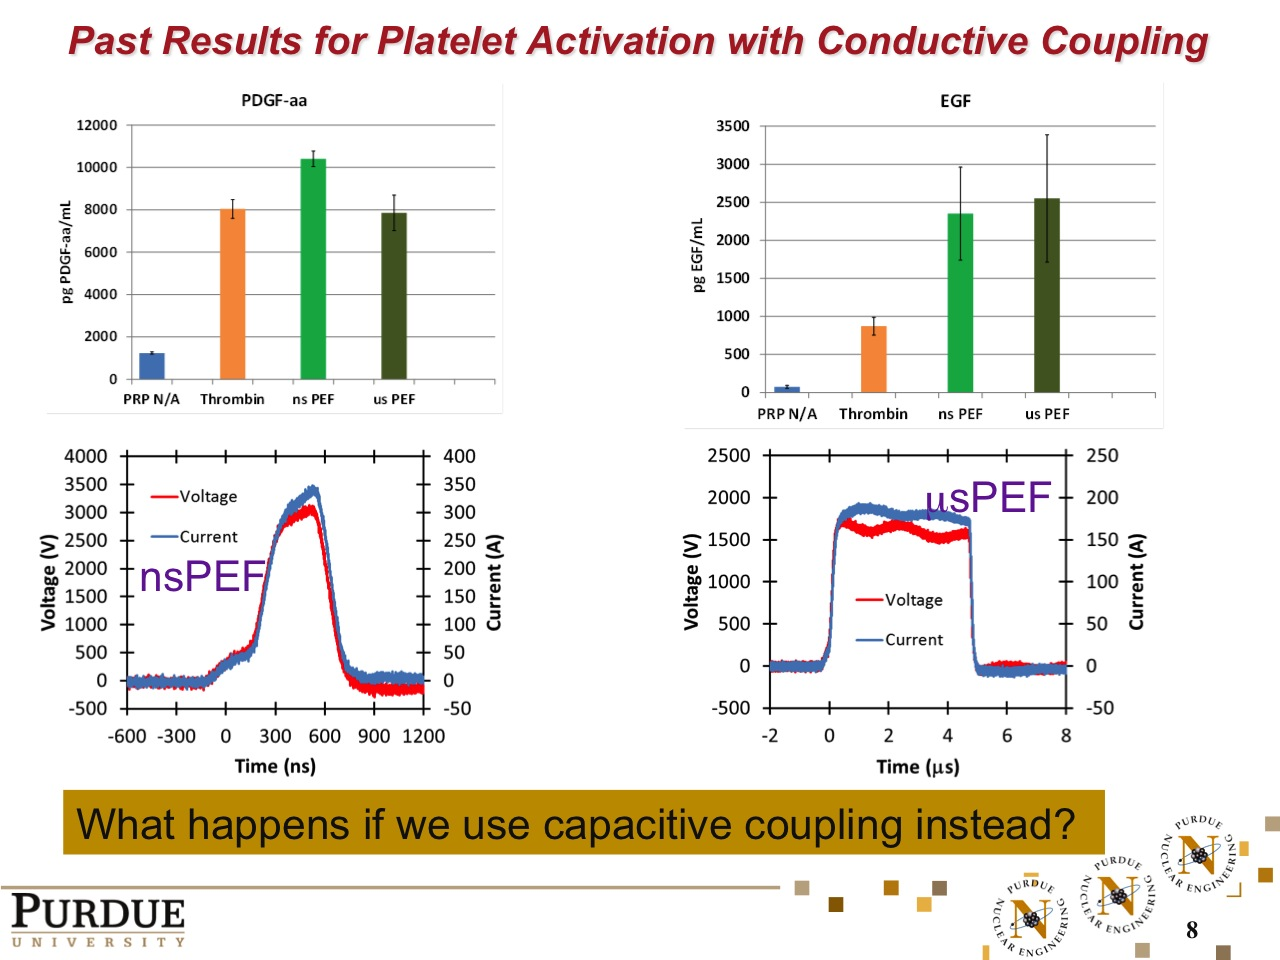 Past Results for Platelet Activation with Conductive Coupling